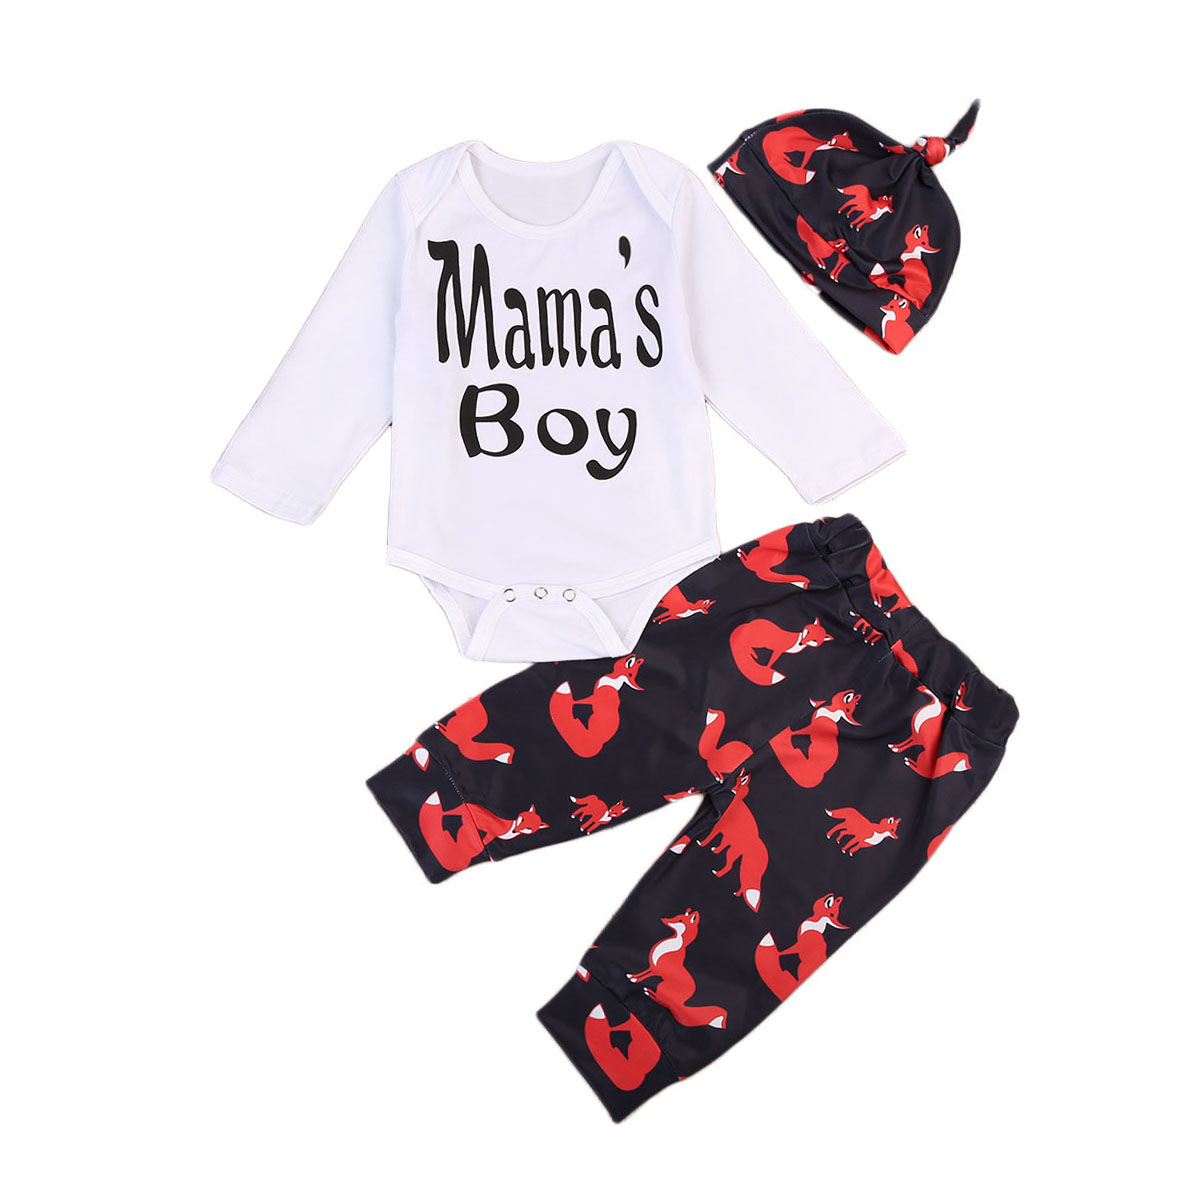 2017 Mamas Boy Newborn Infant Baby Boys Bodysuit Tops+Fox Pants+Hat 3PCS Outfits Set 0-18M Pjs Clothes